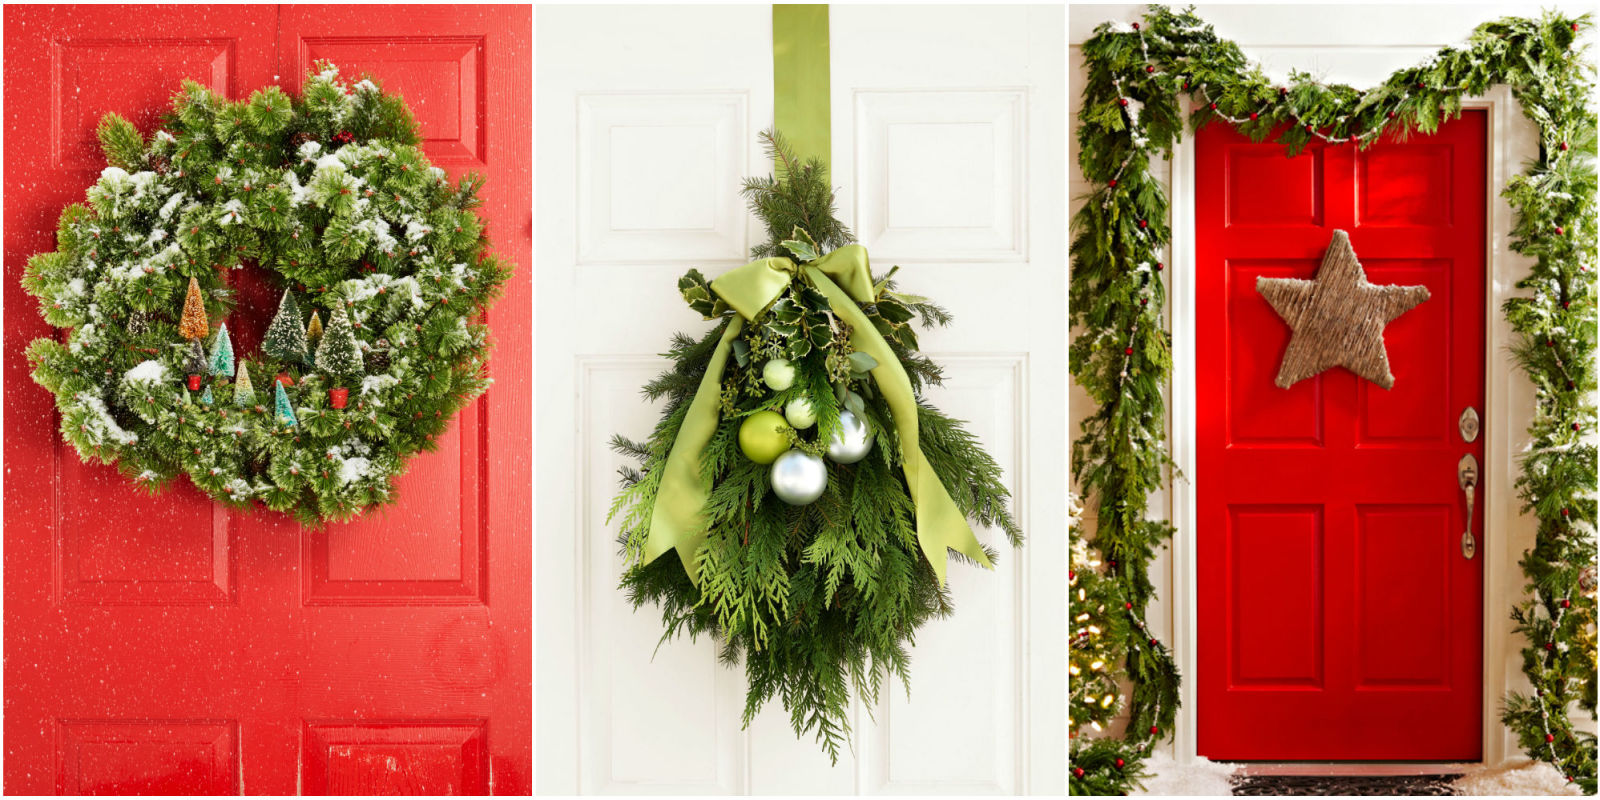 30 christmas door decorating ideas best decorations for 25 beautiful christmas door decorating ideas for your